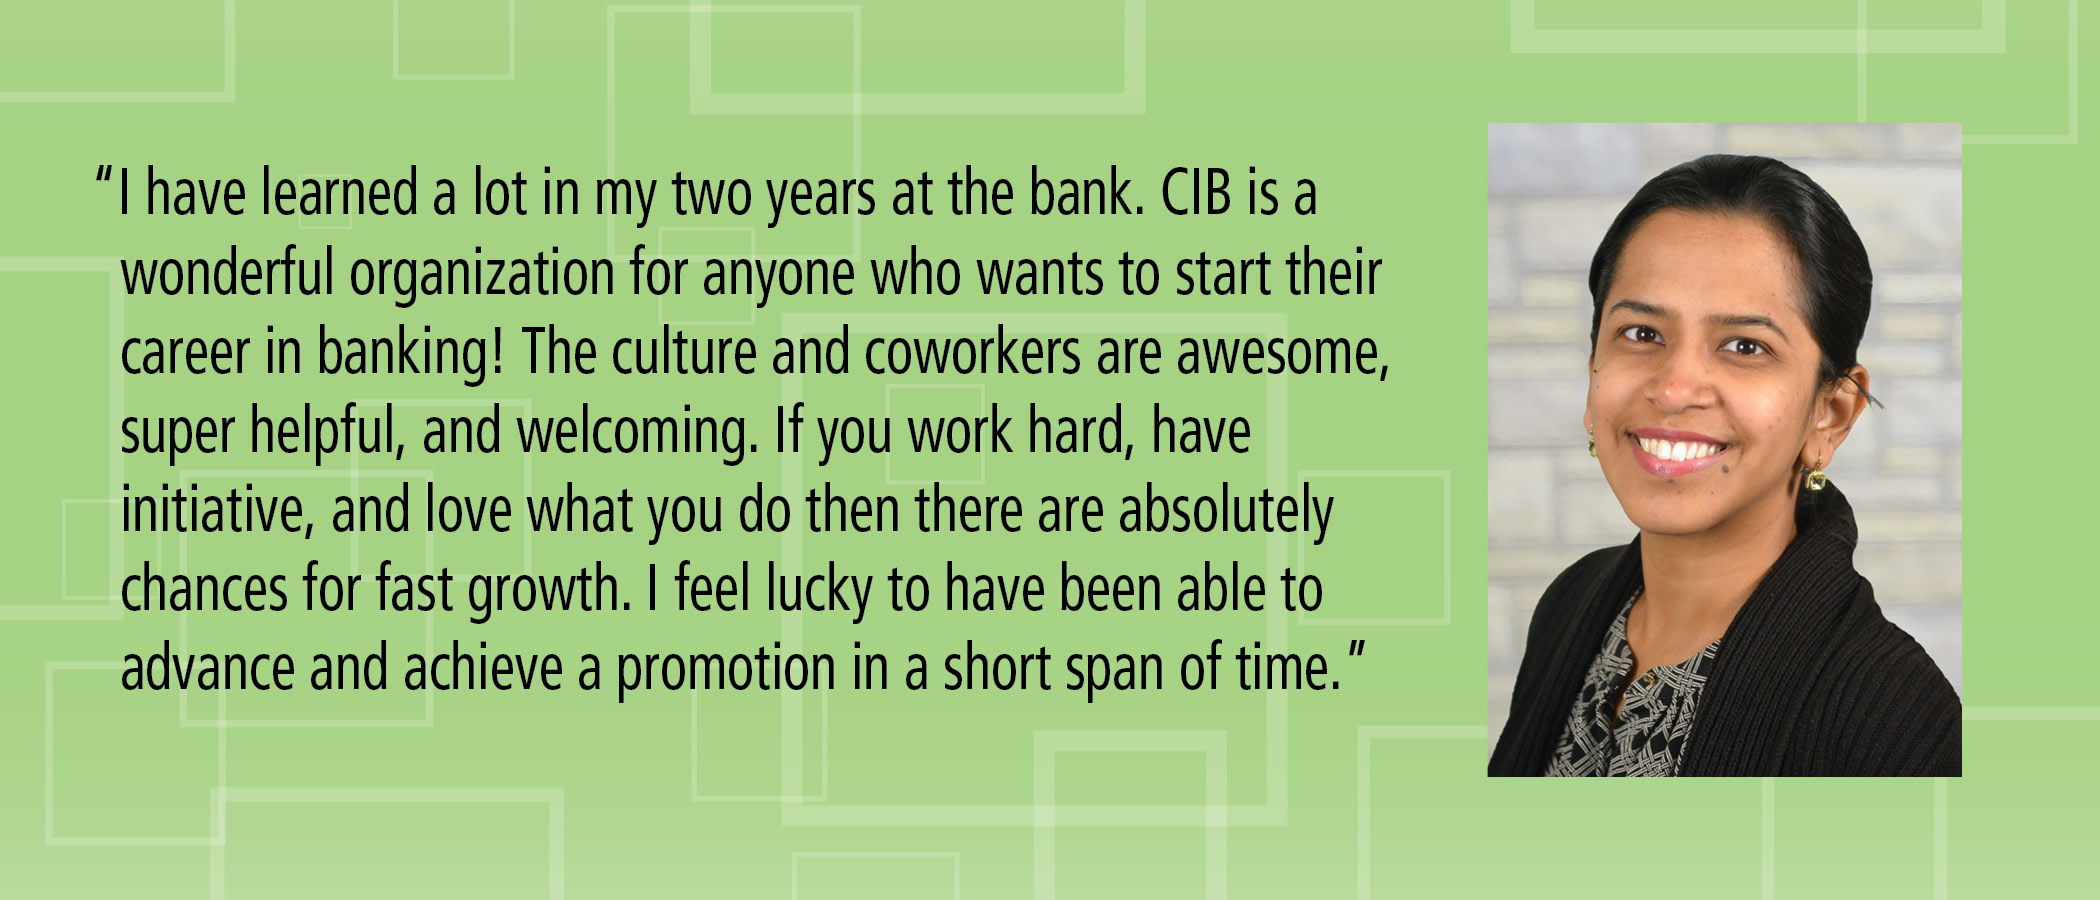 I have learned a lot in my two years at the bank. CIB is a wonderful organization for anyone who wants to start their career in banking! The culture and coworkers are awesome, super helpful, and welcoming. If you work hard, have initiative, and love what you do then there are absolutely chances for fast growth. I feel lucky to have been able to advance and achieve a promotion in a short span of time.